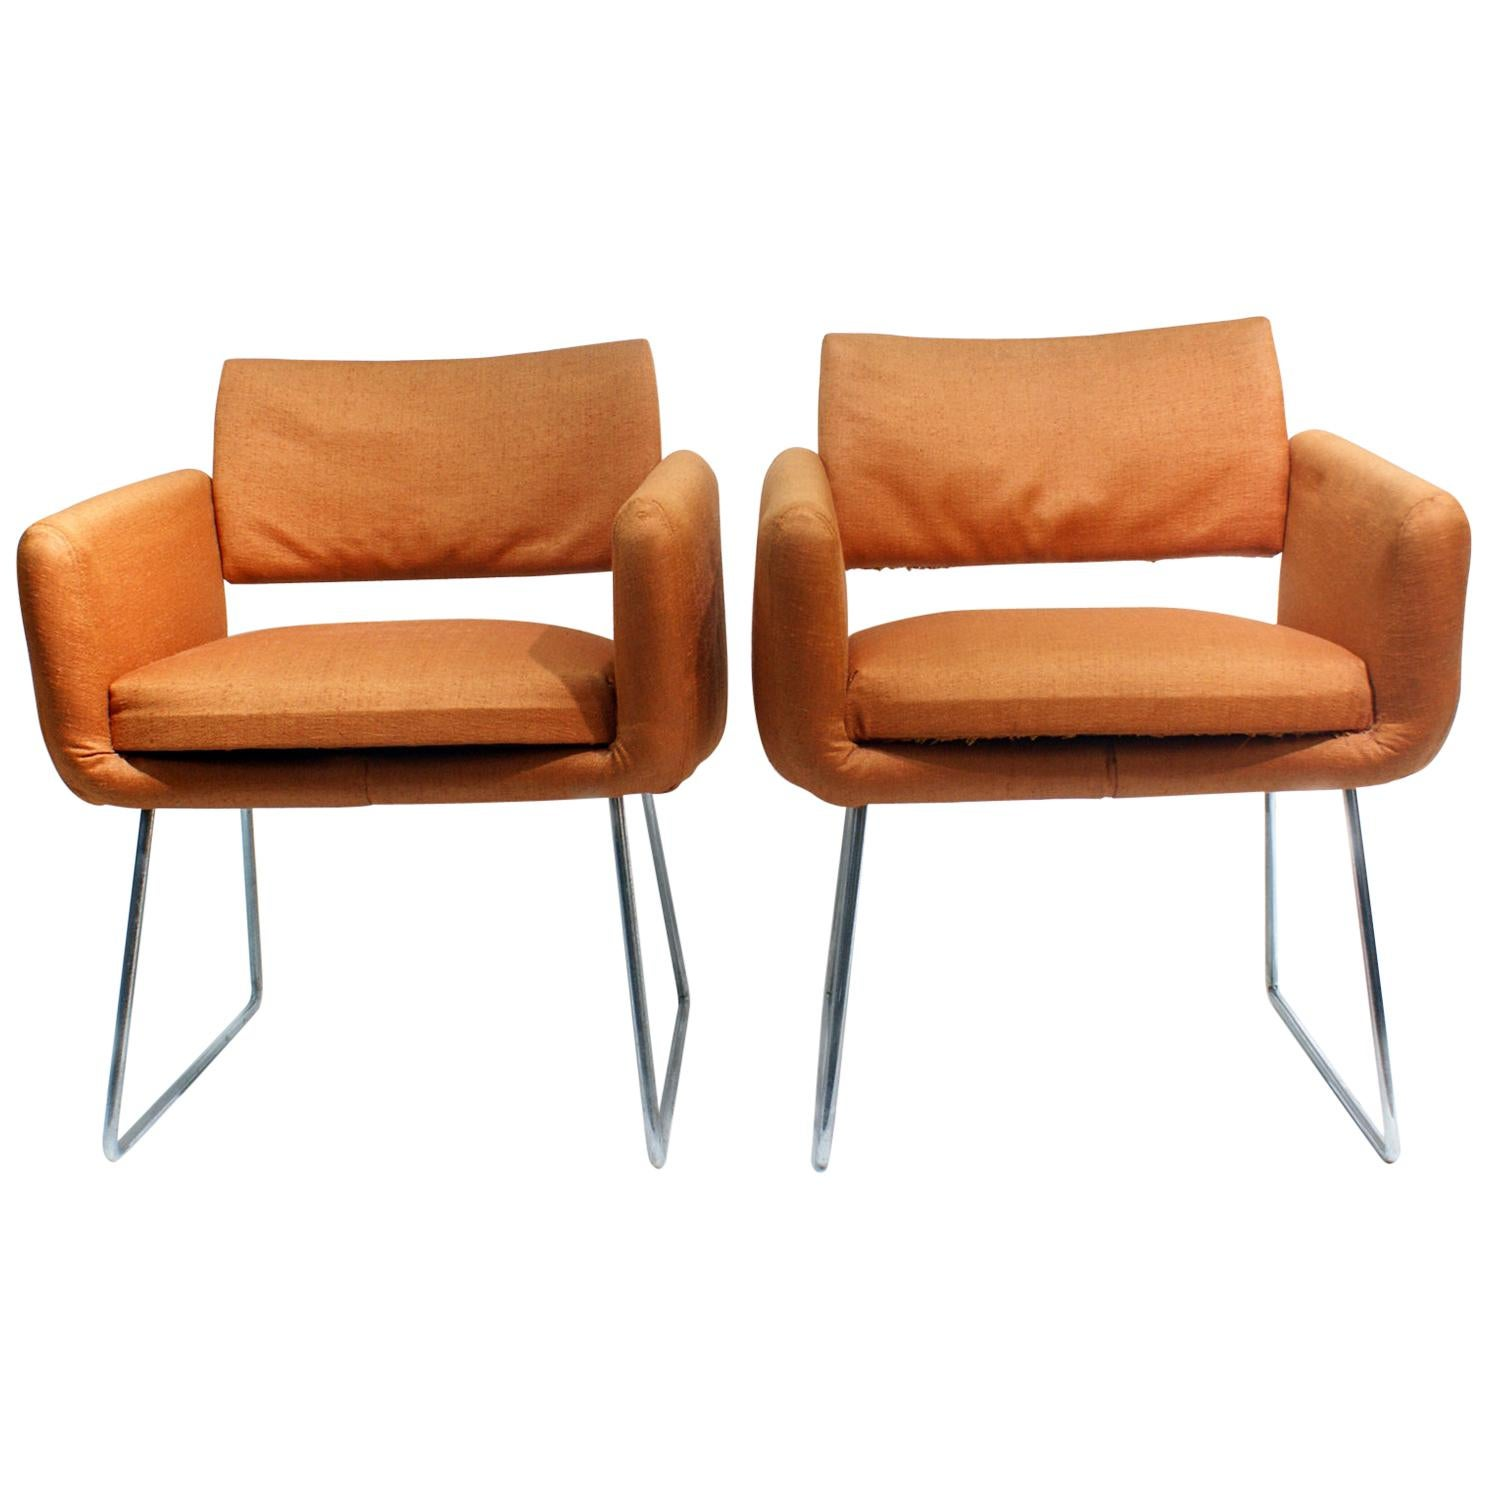 Pair of 760 Chairs by Joseph Andre Motte, France, 1957 for Steiner, Paris